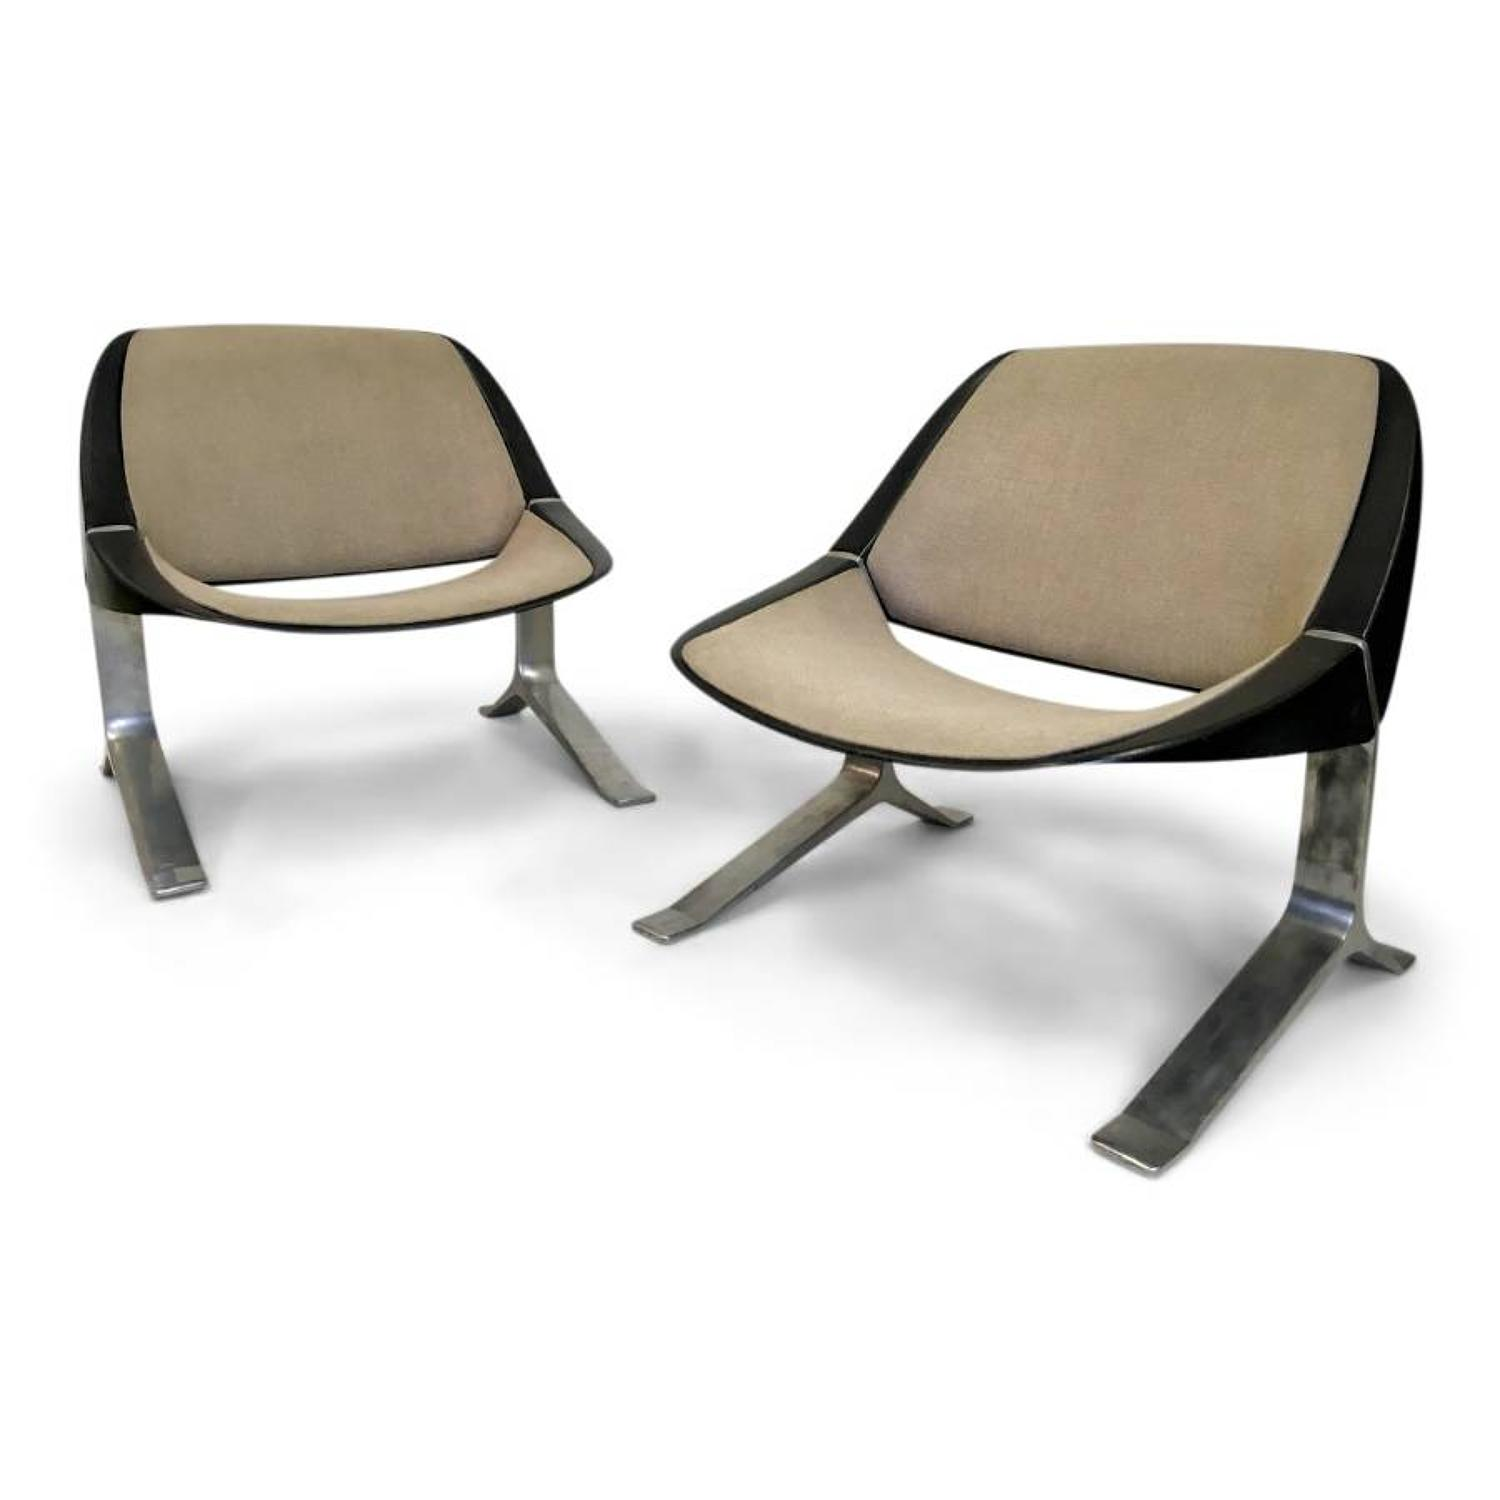 A pair of 1970s lounge chairs by Knut Hesterberg